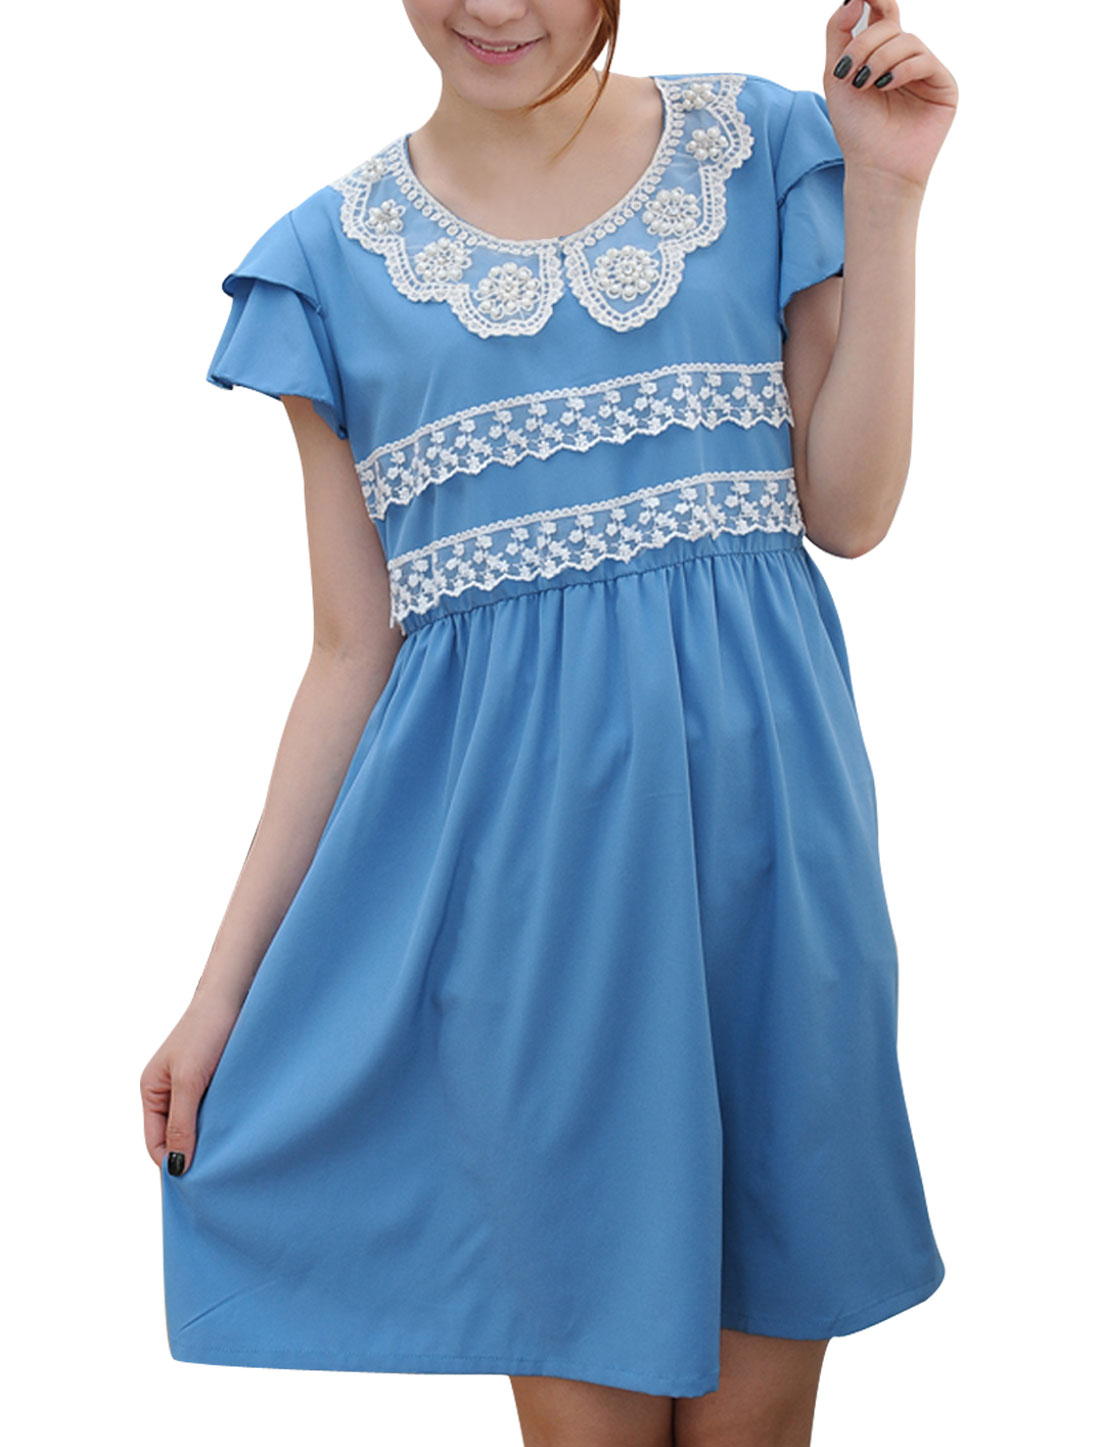 Motherhood Cap Sleeve Plastic Pearls Decor Chiffon Modern Dress Sky Blue S